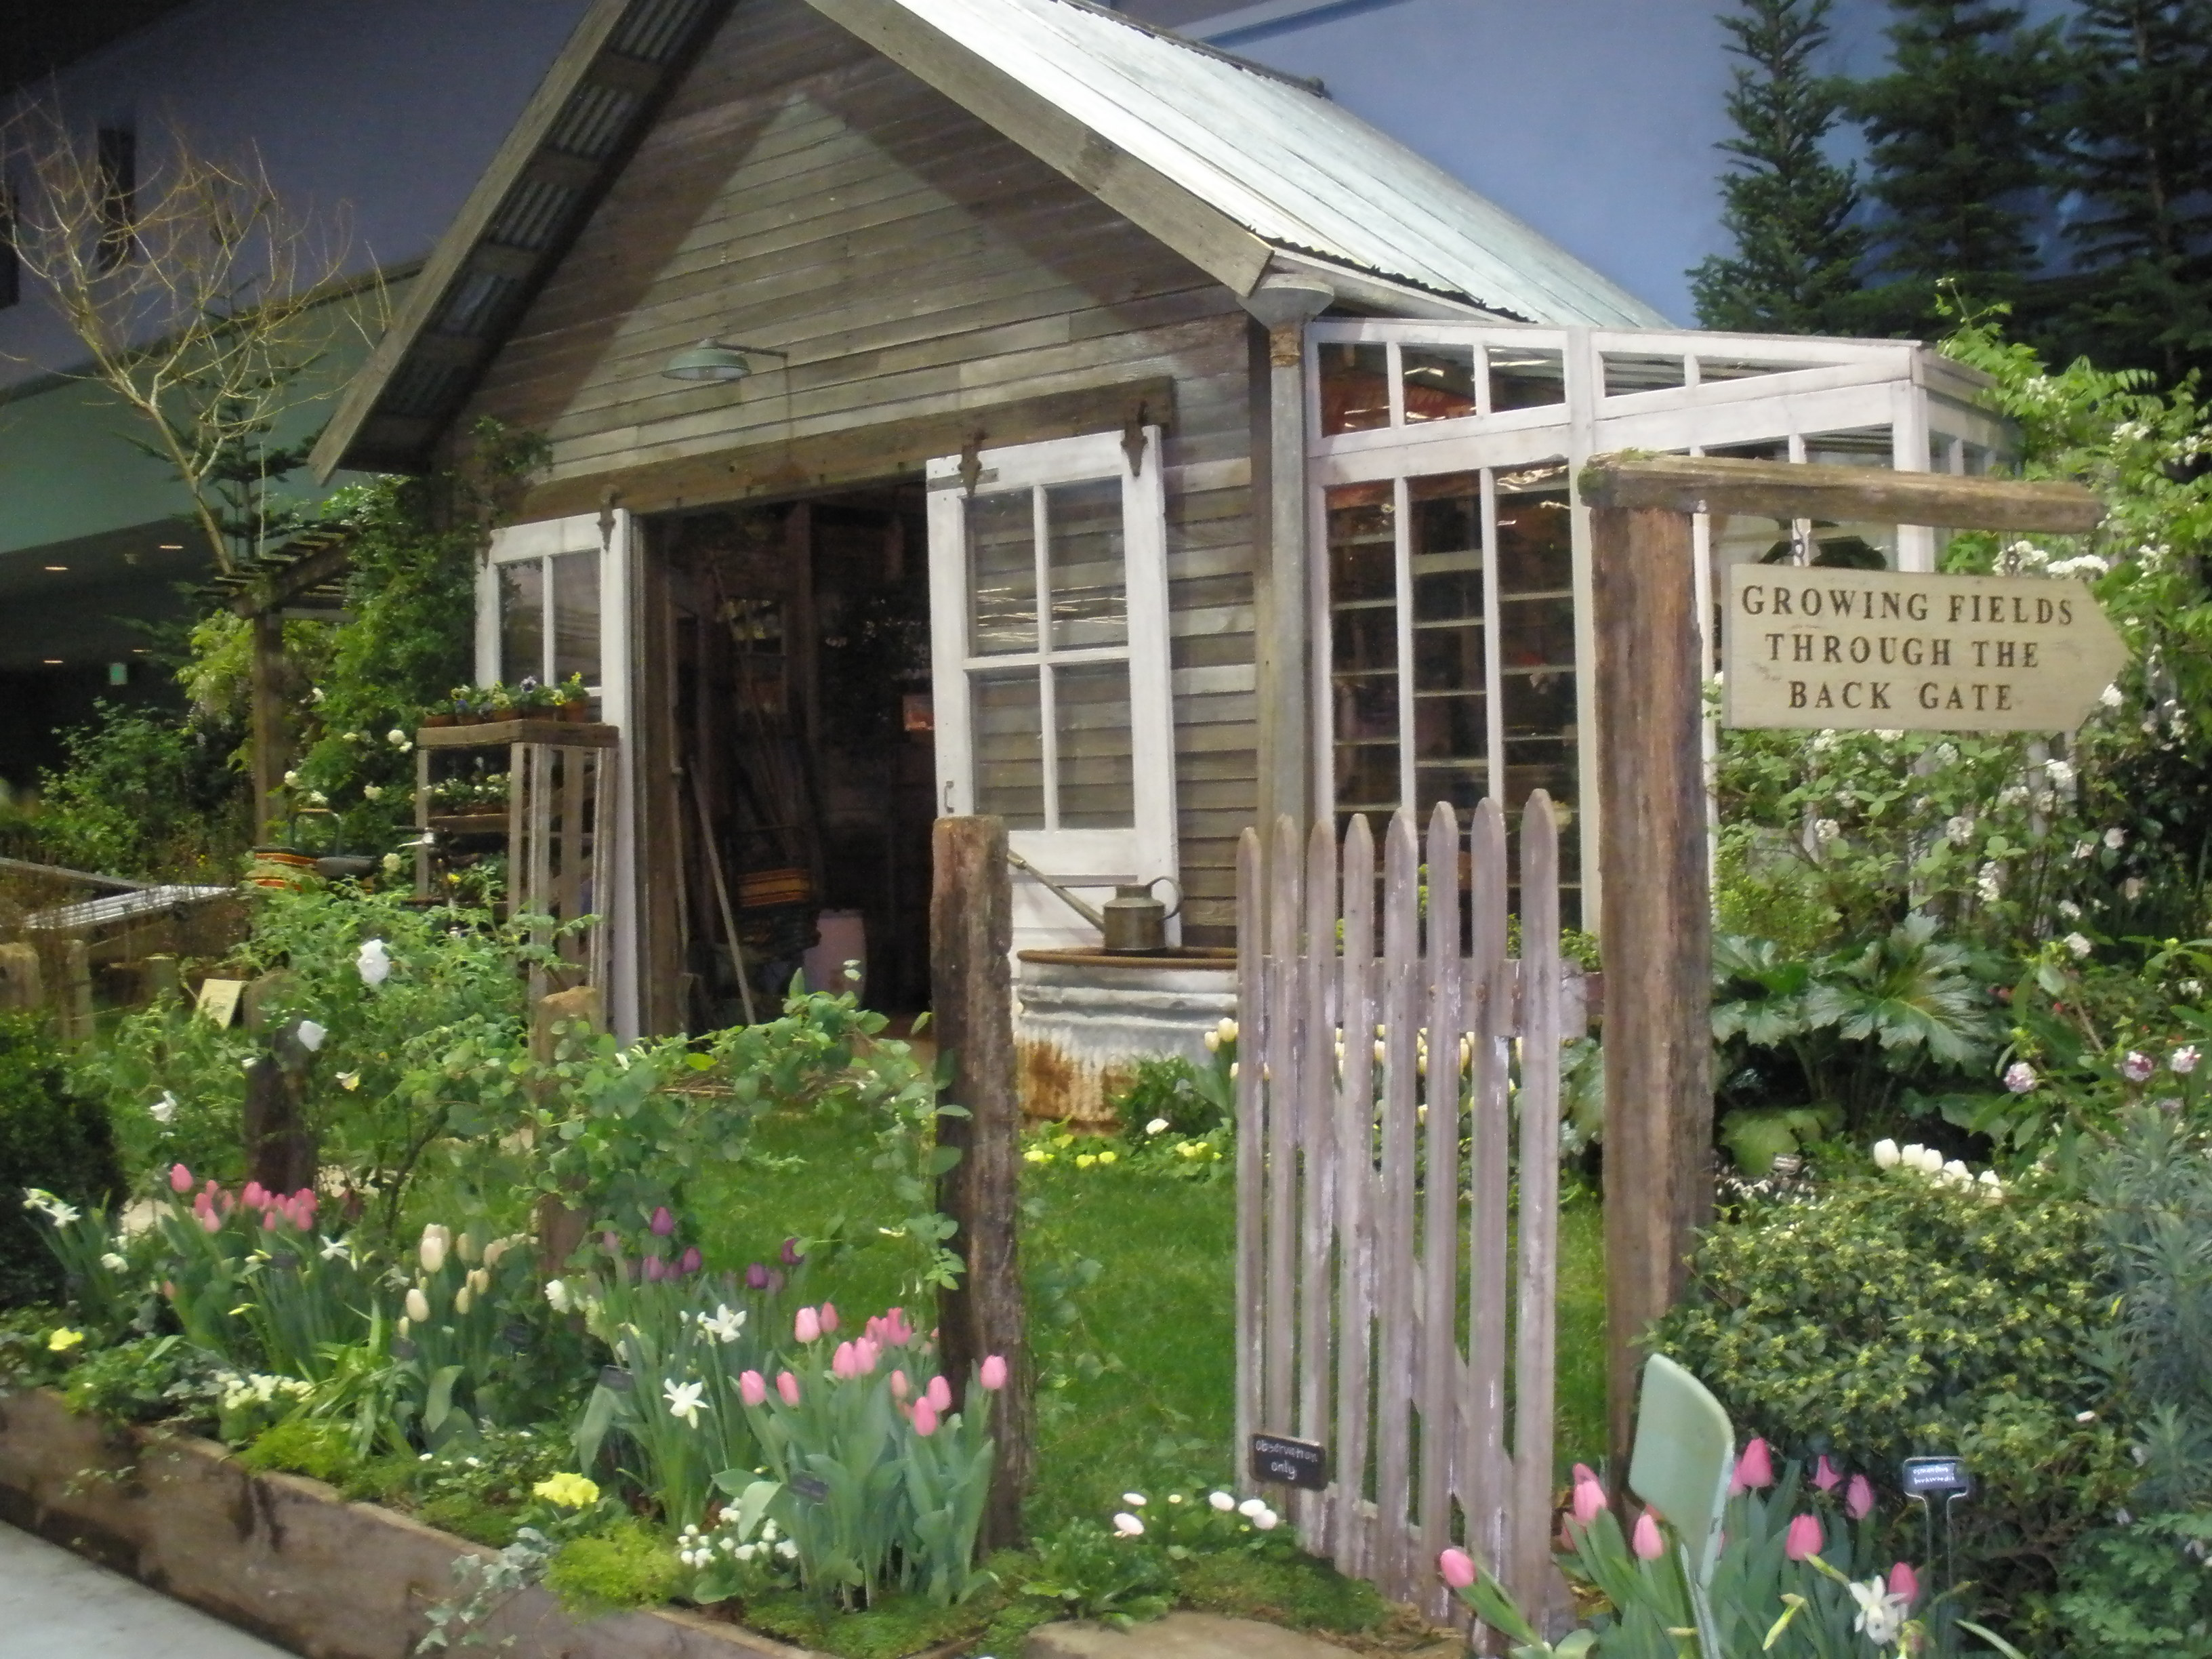 A nw flower garden show thank you figments studio blog for Garden shed pictures